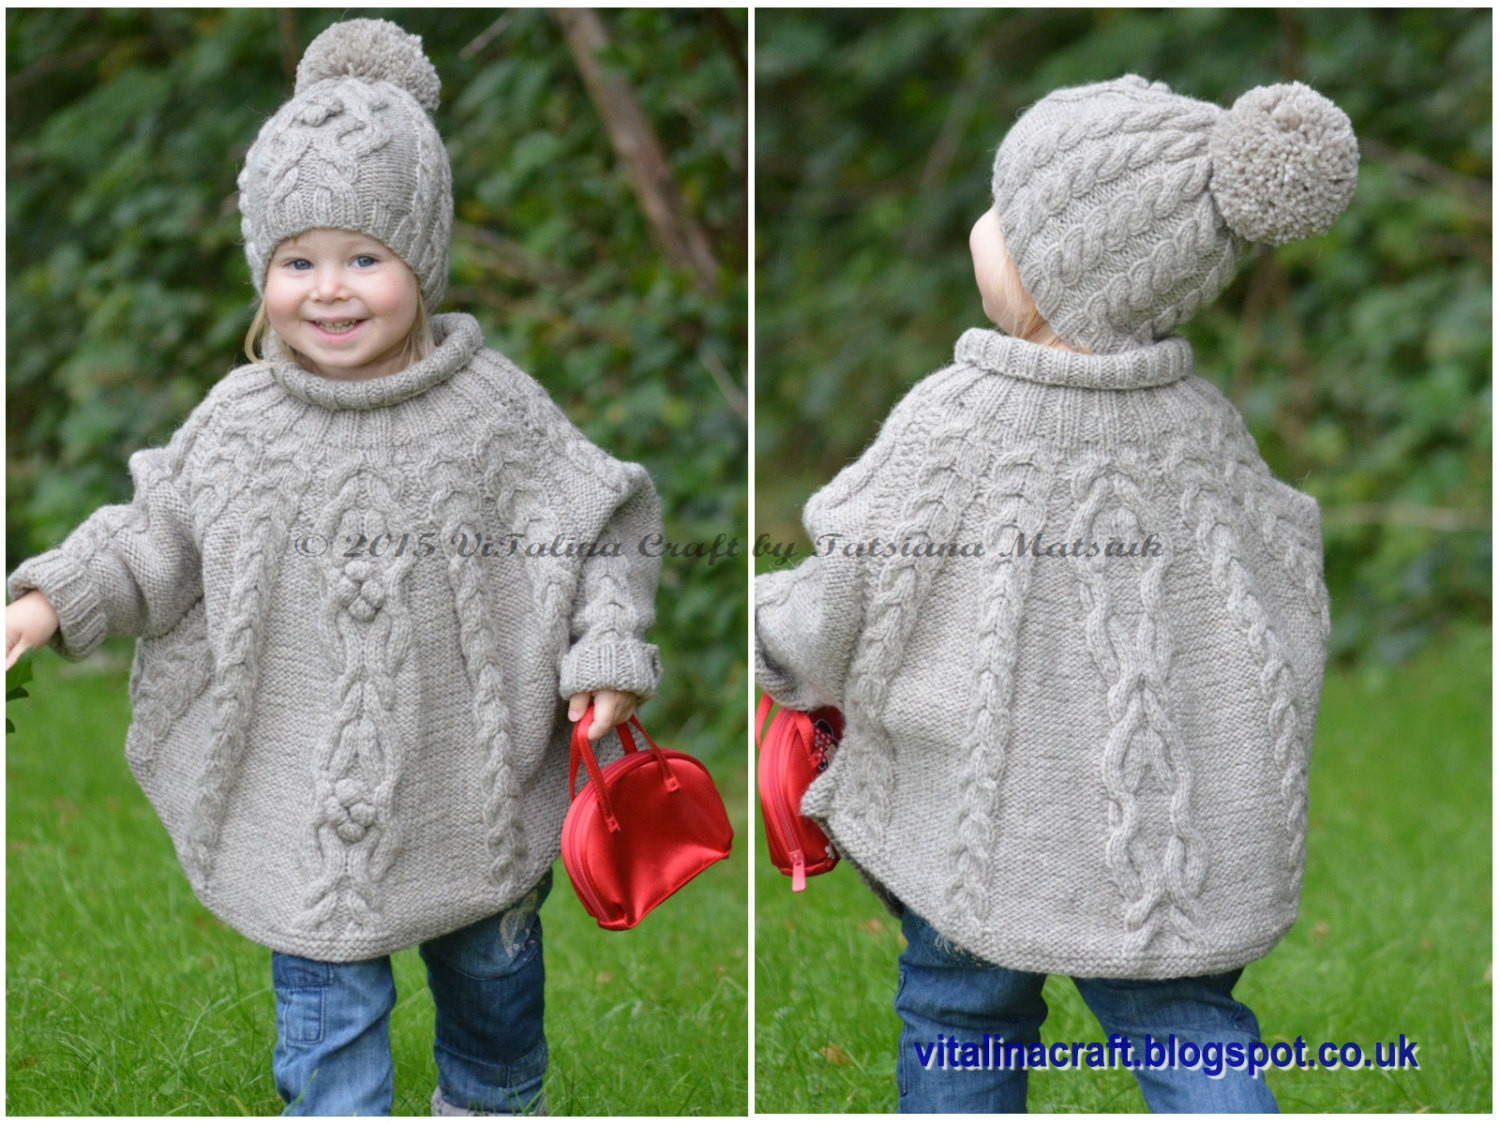 Best Of Knitting Patterns for Children to Knit Crochet and Knit Knitting Patterns for Childrens Sweaters Of Charming 47 Models Knitting Patterns for Childrens Sweaters